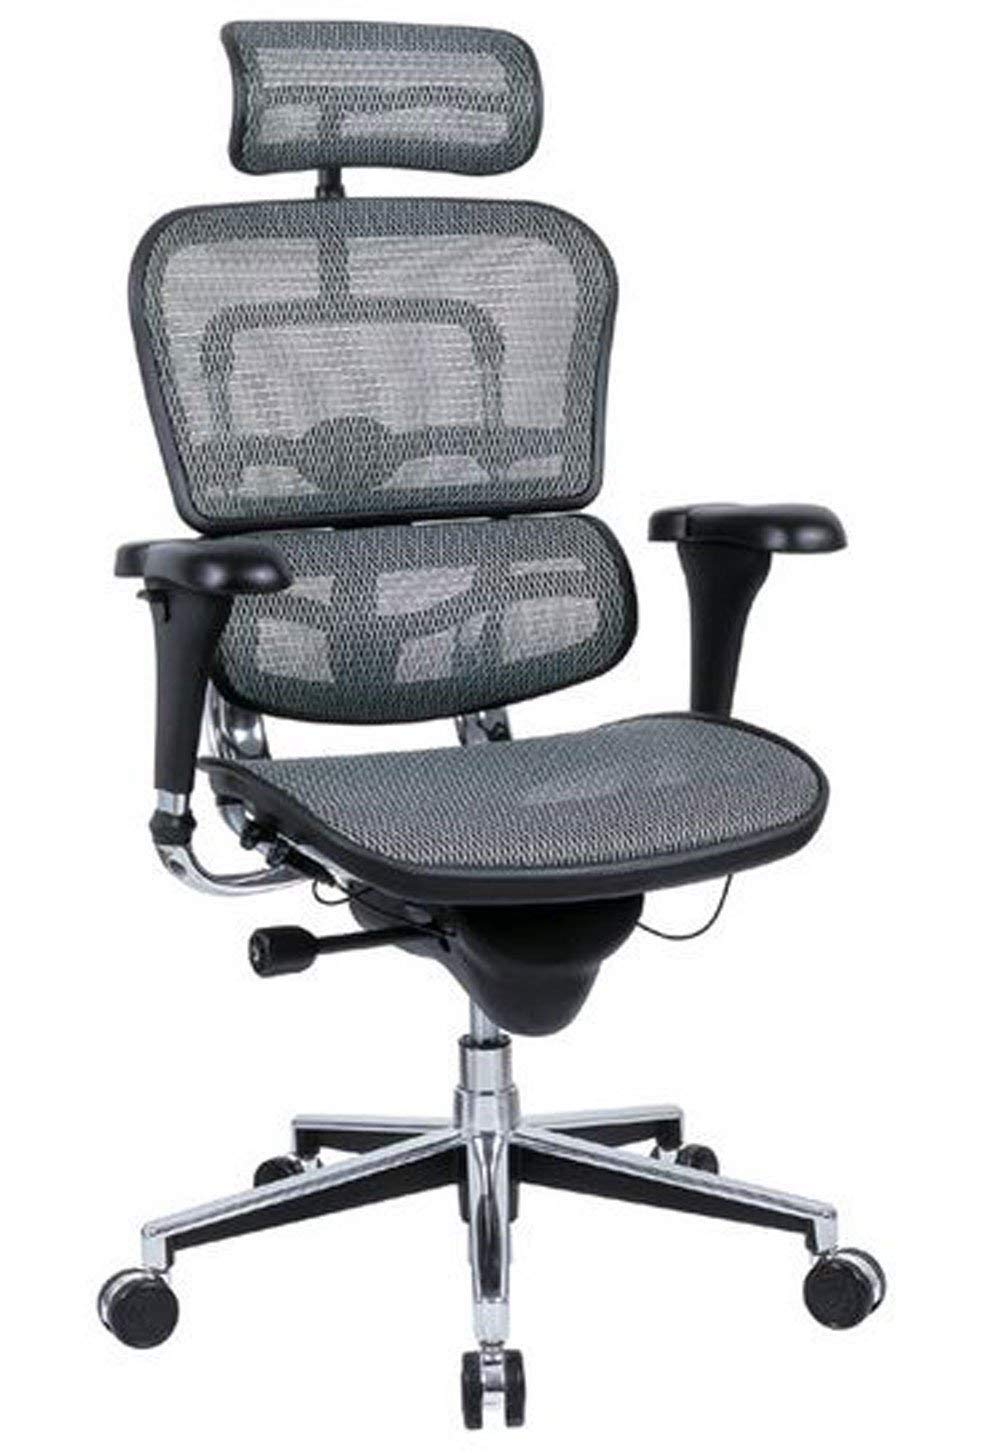 <b><font color=green>MESH OFFICE CHAIRS KEEP YOU COOL AND COMFY. OVER 130 MODELS. ERGONOMIC HOME.COM KEEPS YOU COOL AND COMFY! FREE SHIPPING.</b></font>